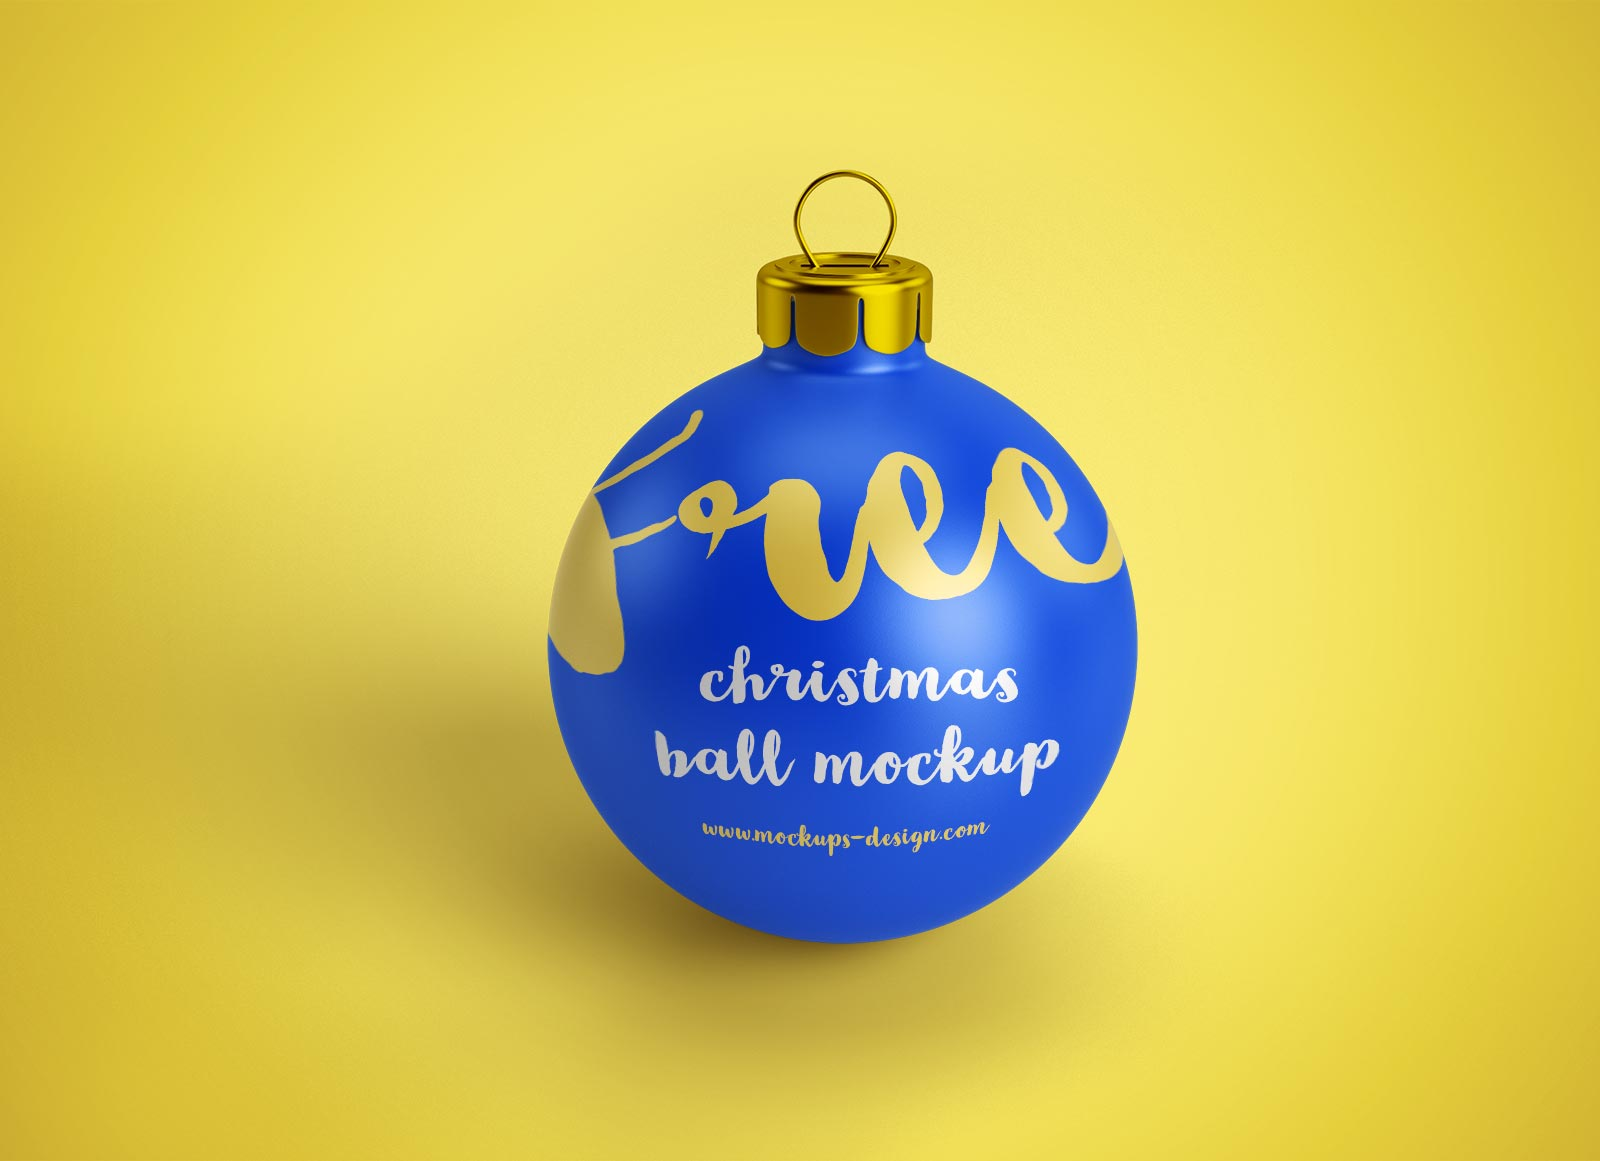 Mockup Iphone Video Free Christmas Ball (bauble) Ornament Mockup Psd Files